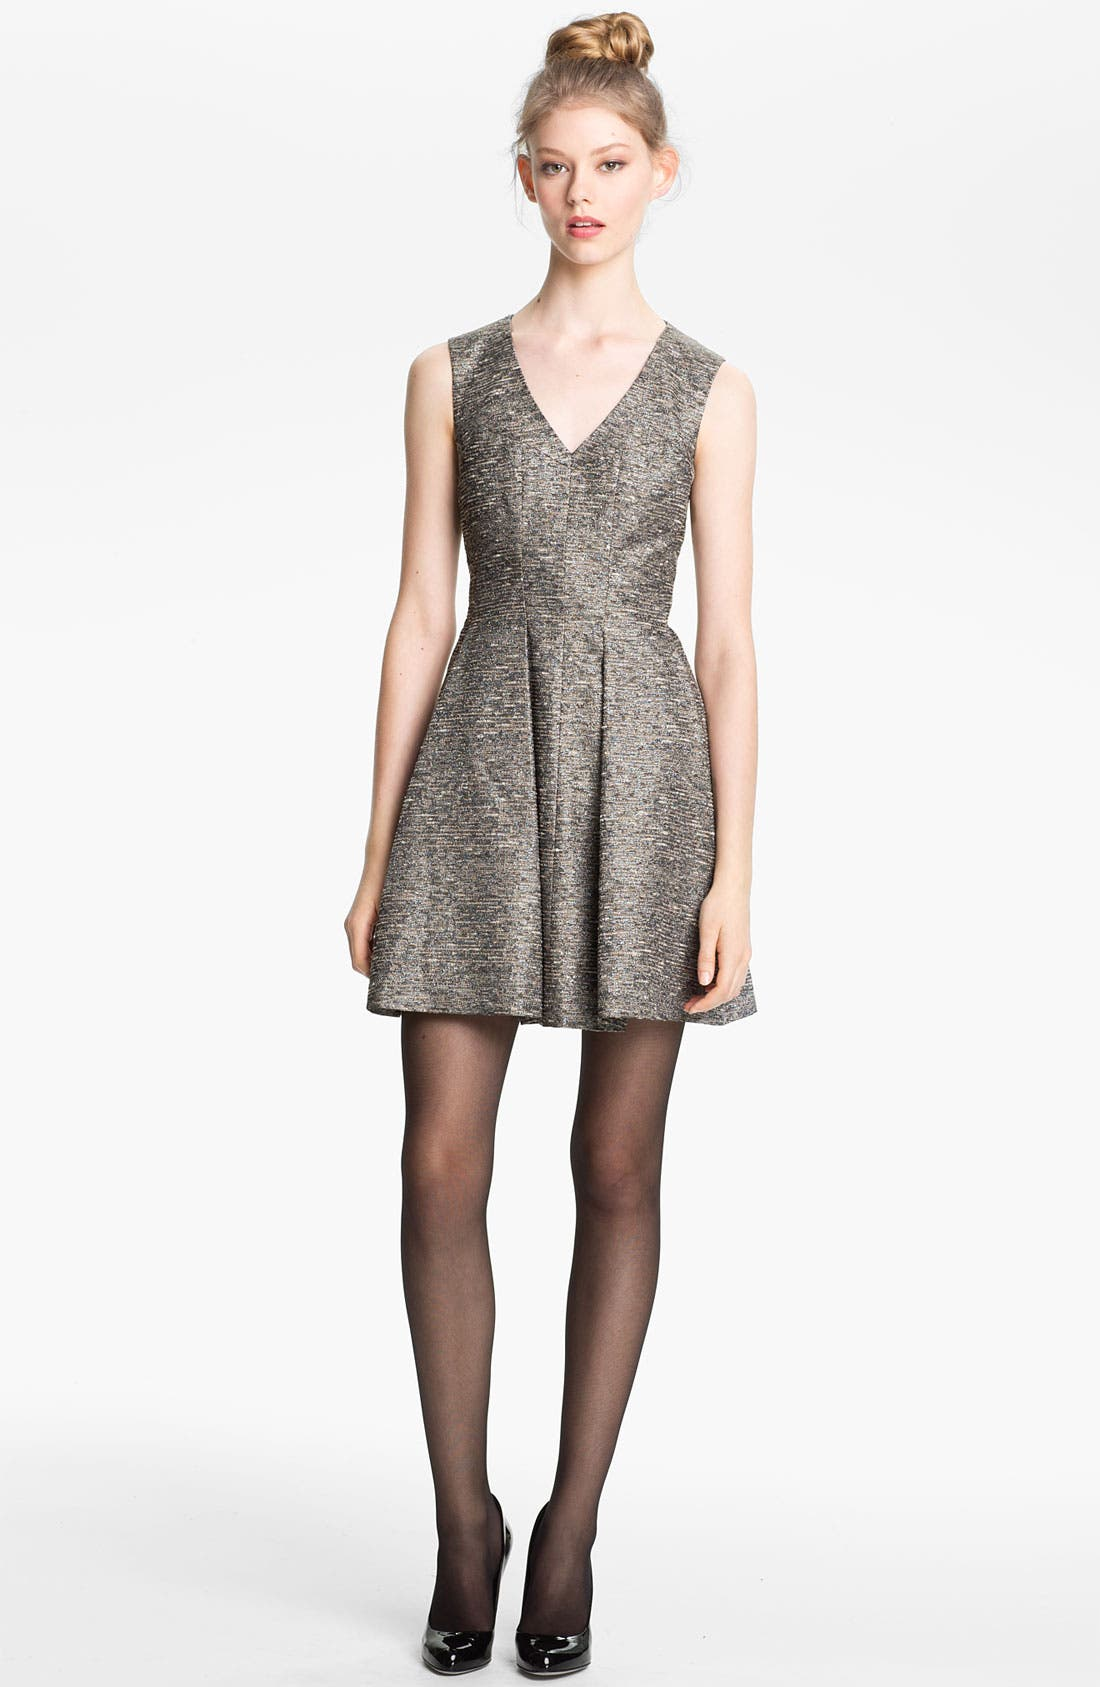 Alternate Image 1 Selected - Mcginn 'Chloe' Textured Metallic Dress